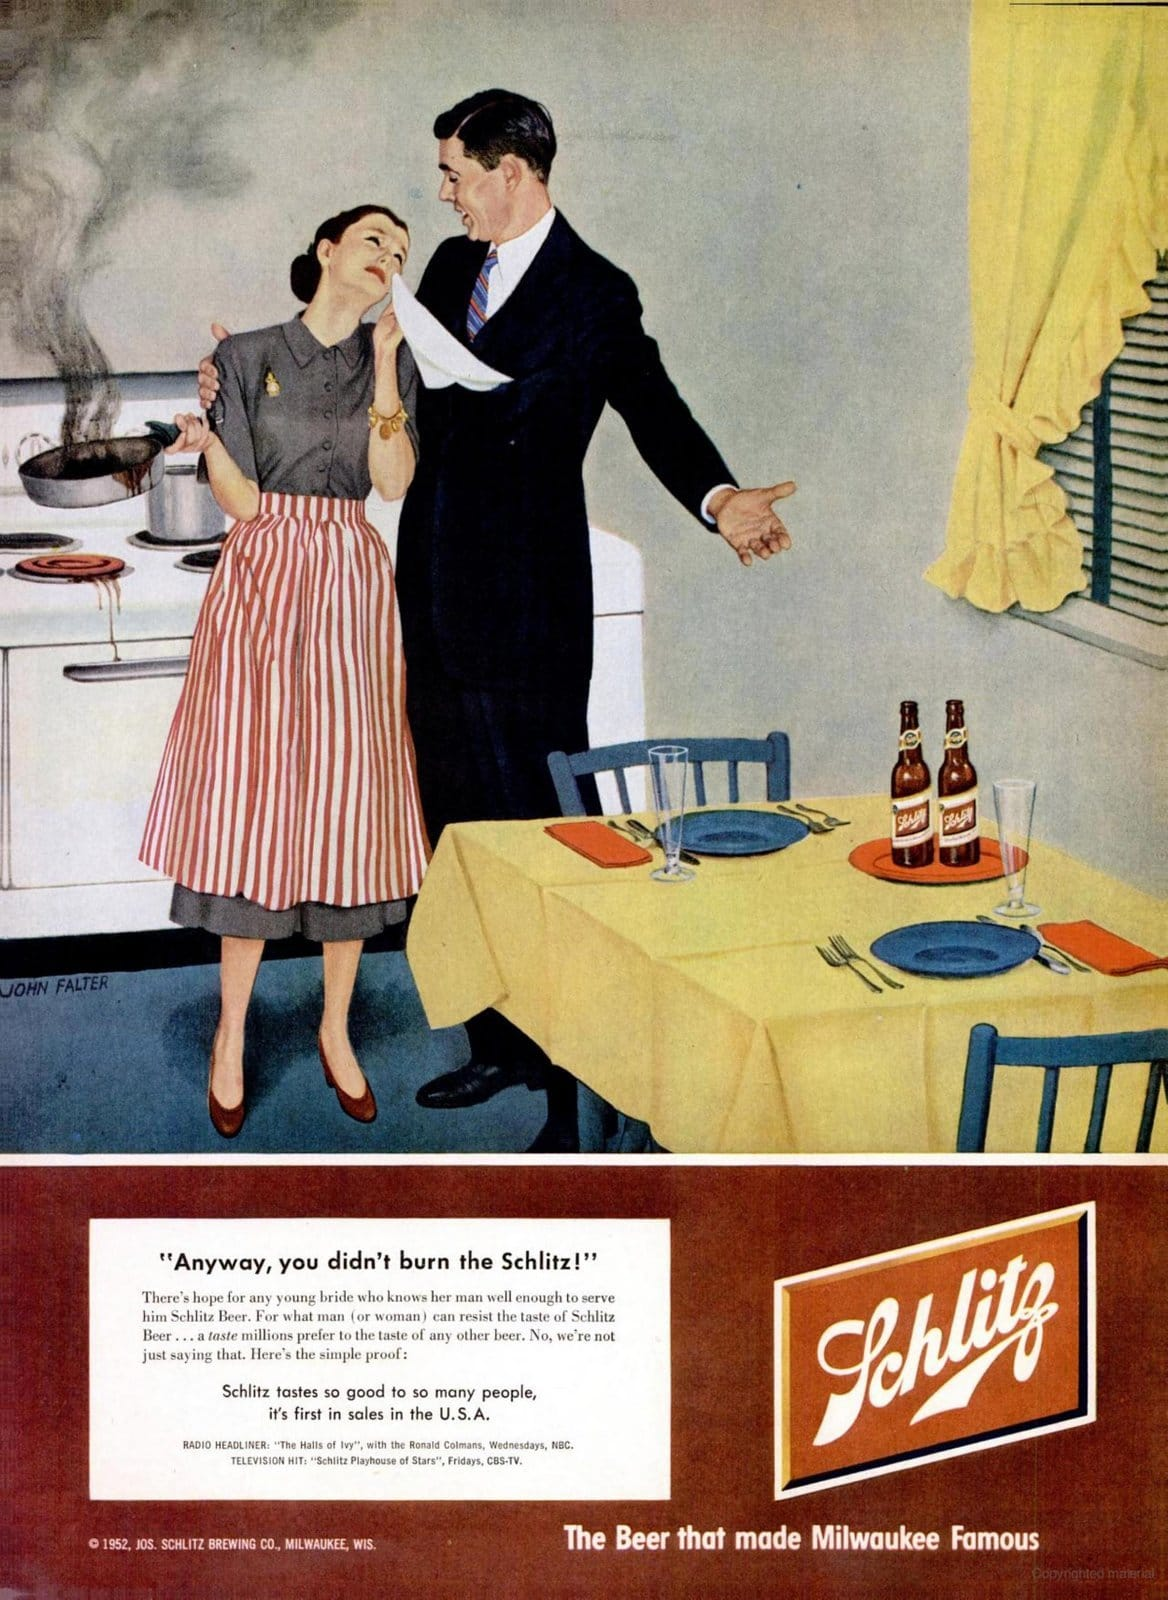 At least you didn't burn the beer - Classic 1950s ad